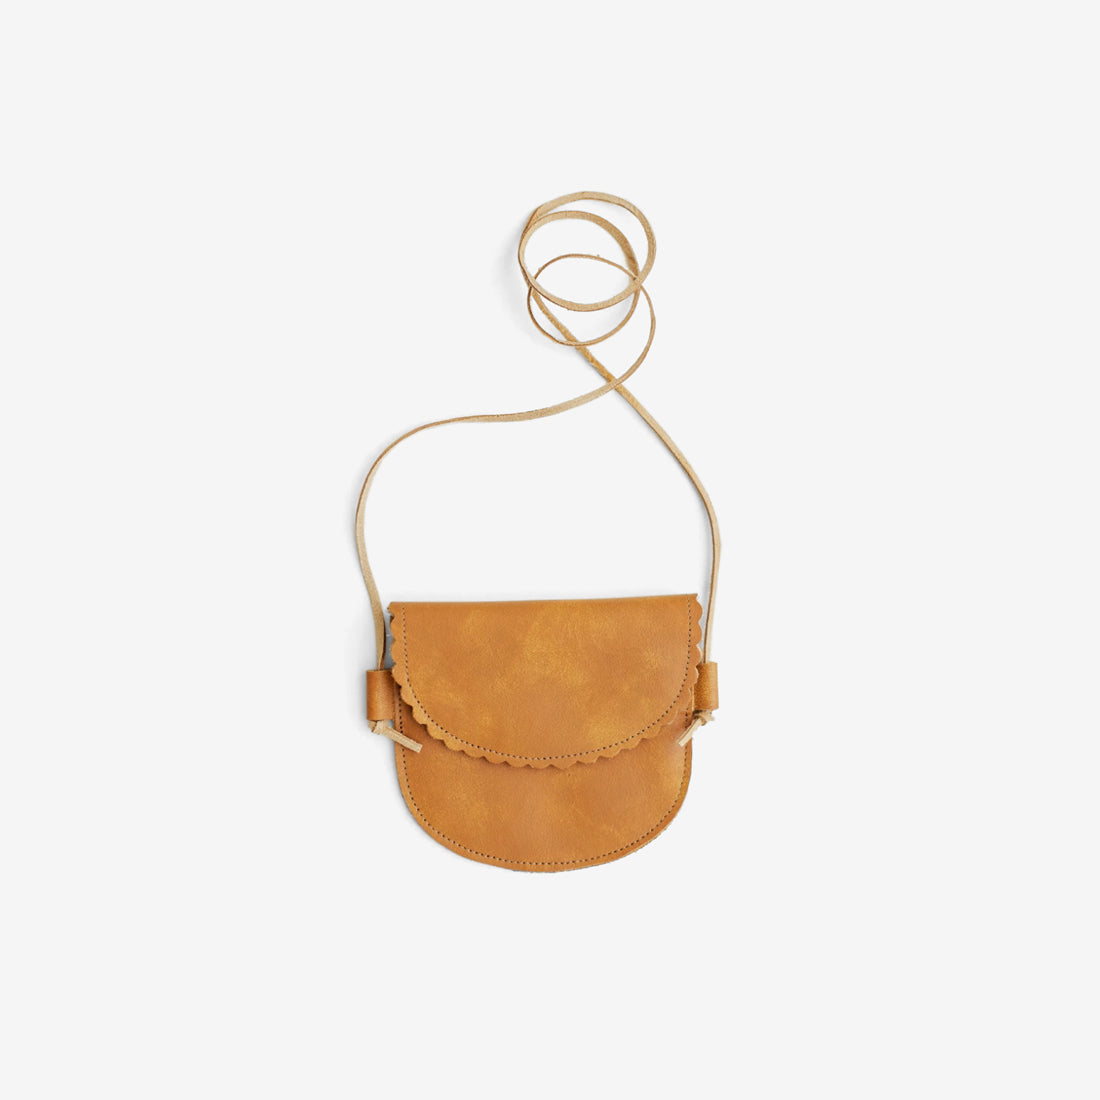 Scallop Edge Little Leather Purse - Apricot